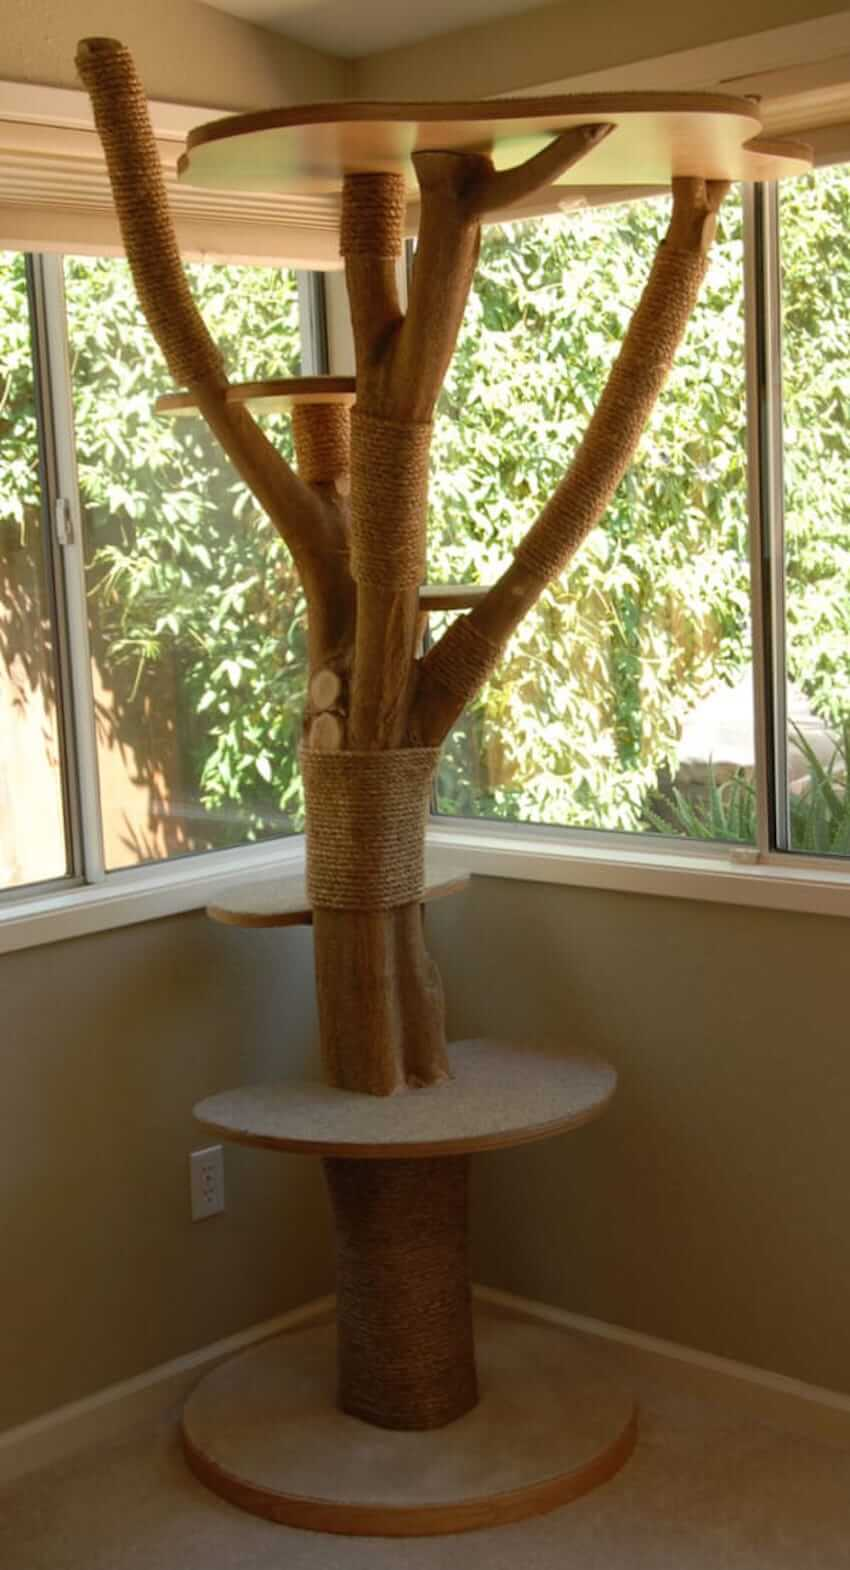 Pet cat perch for your home interior